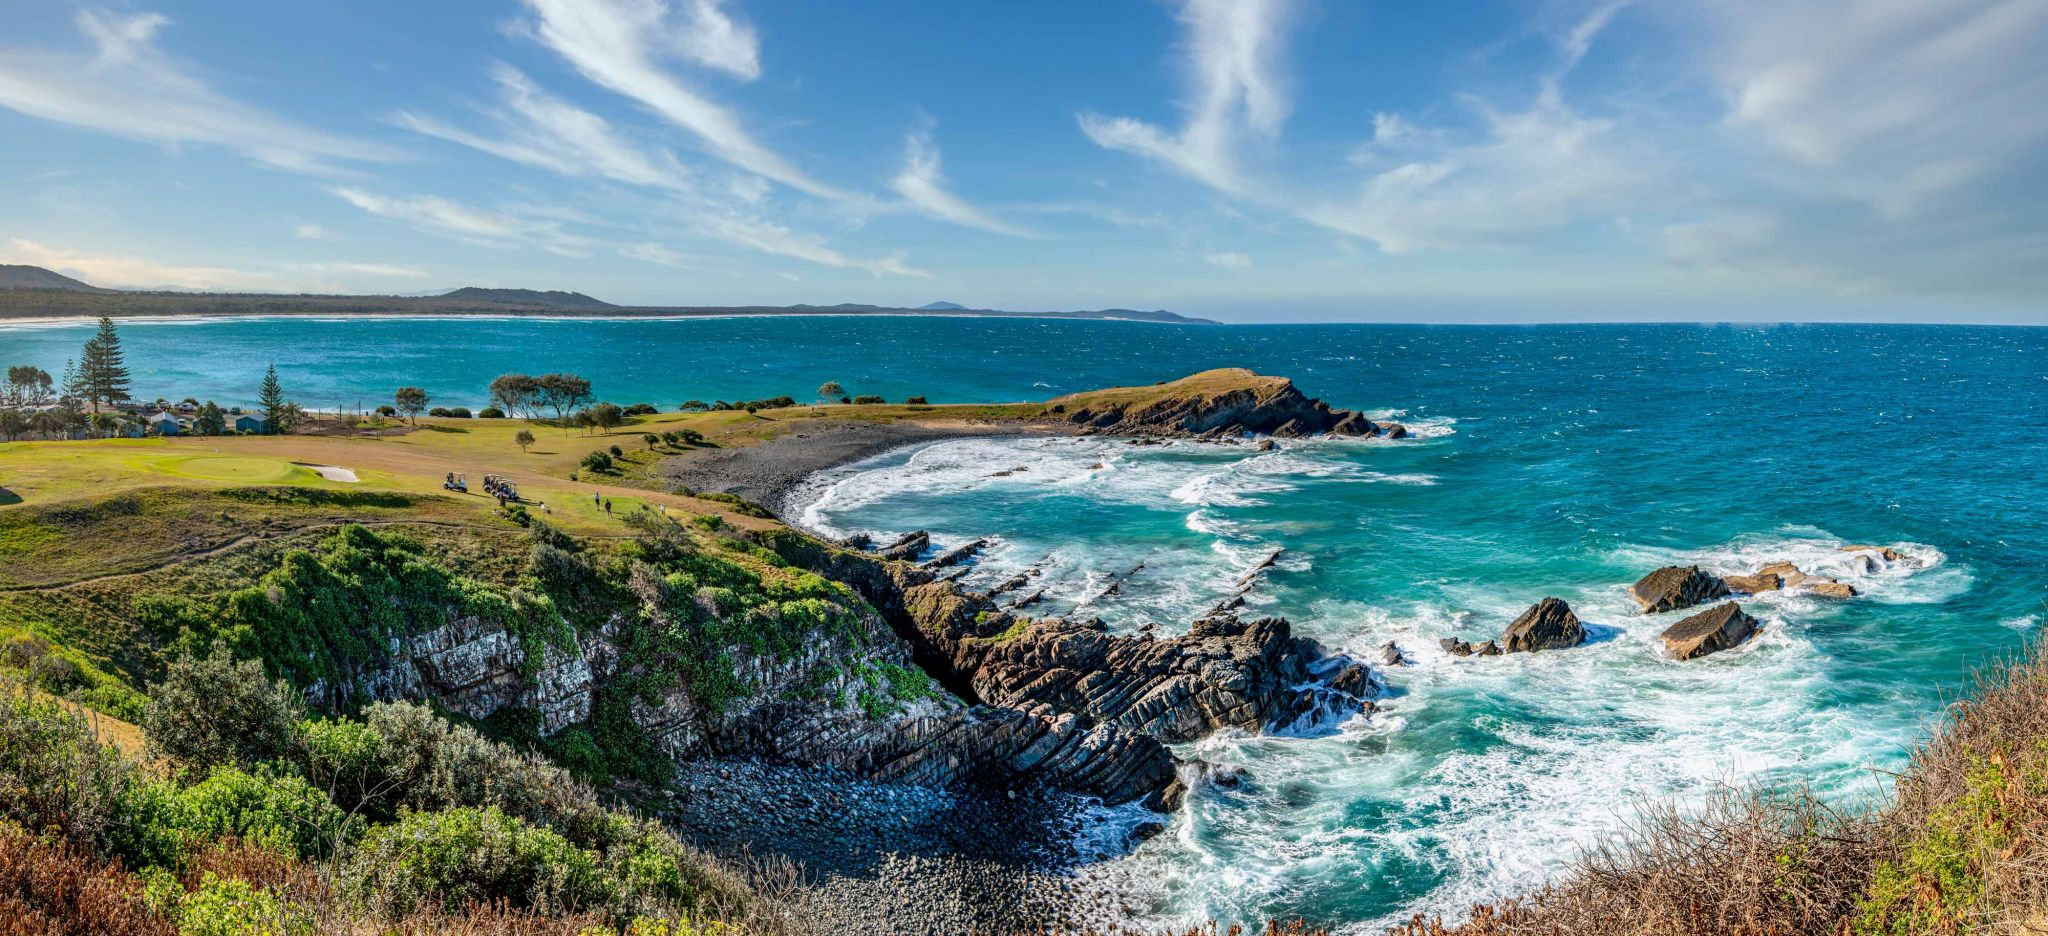 Pebbly Beach & Little Nobby Crescent Head New South Wales, Australia